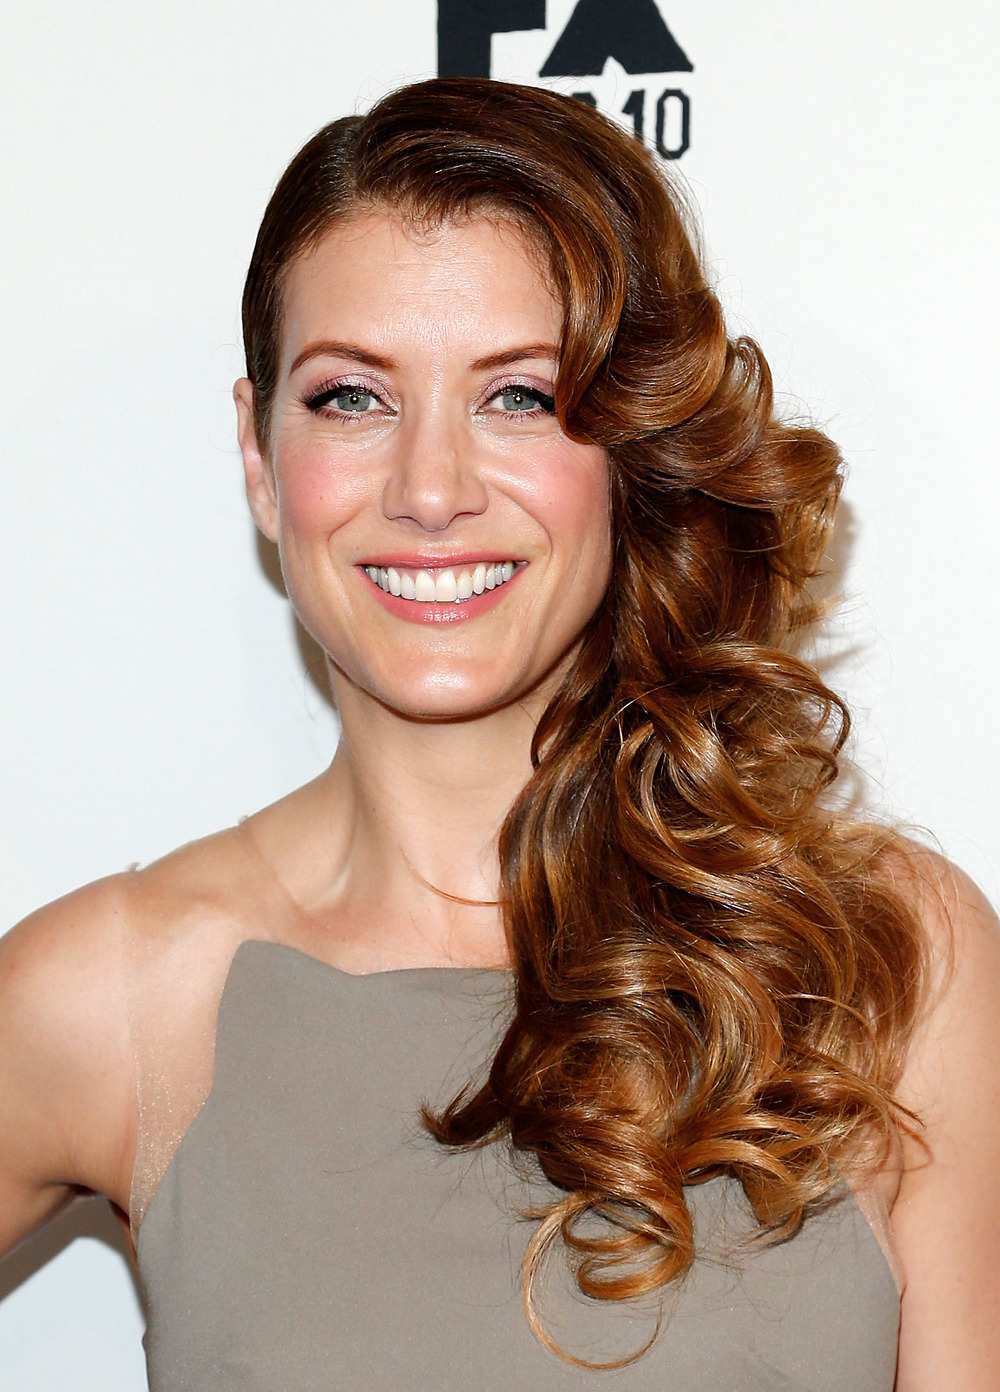 Grey's Anatomy's Kate Walsh in Fargo: How Many People Watched the First Episode?